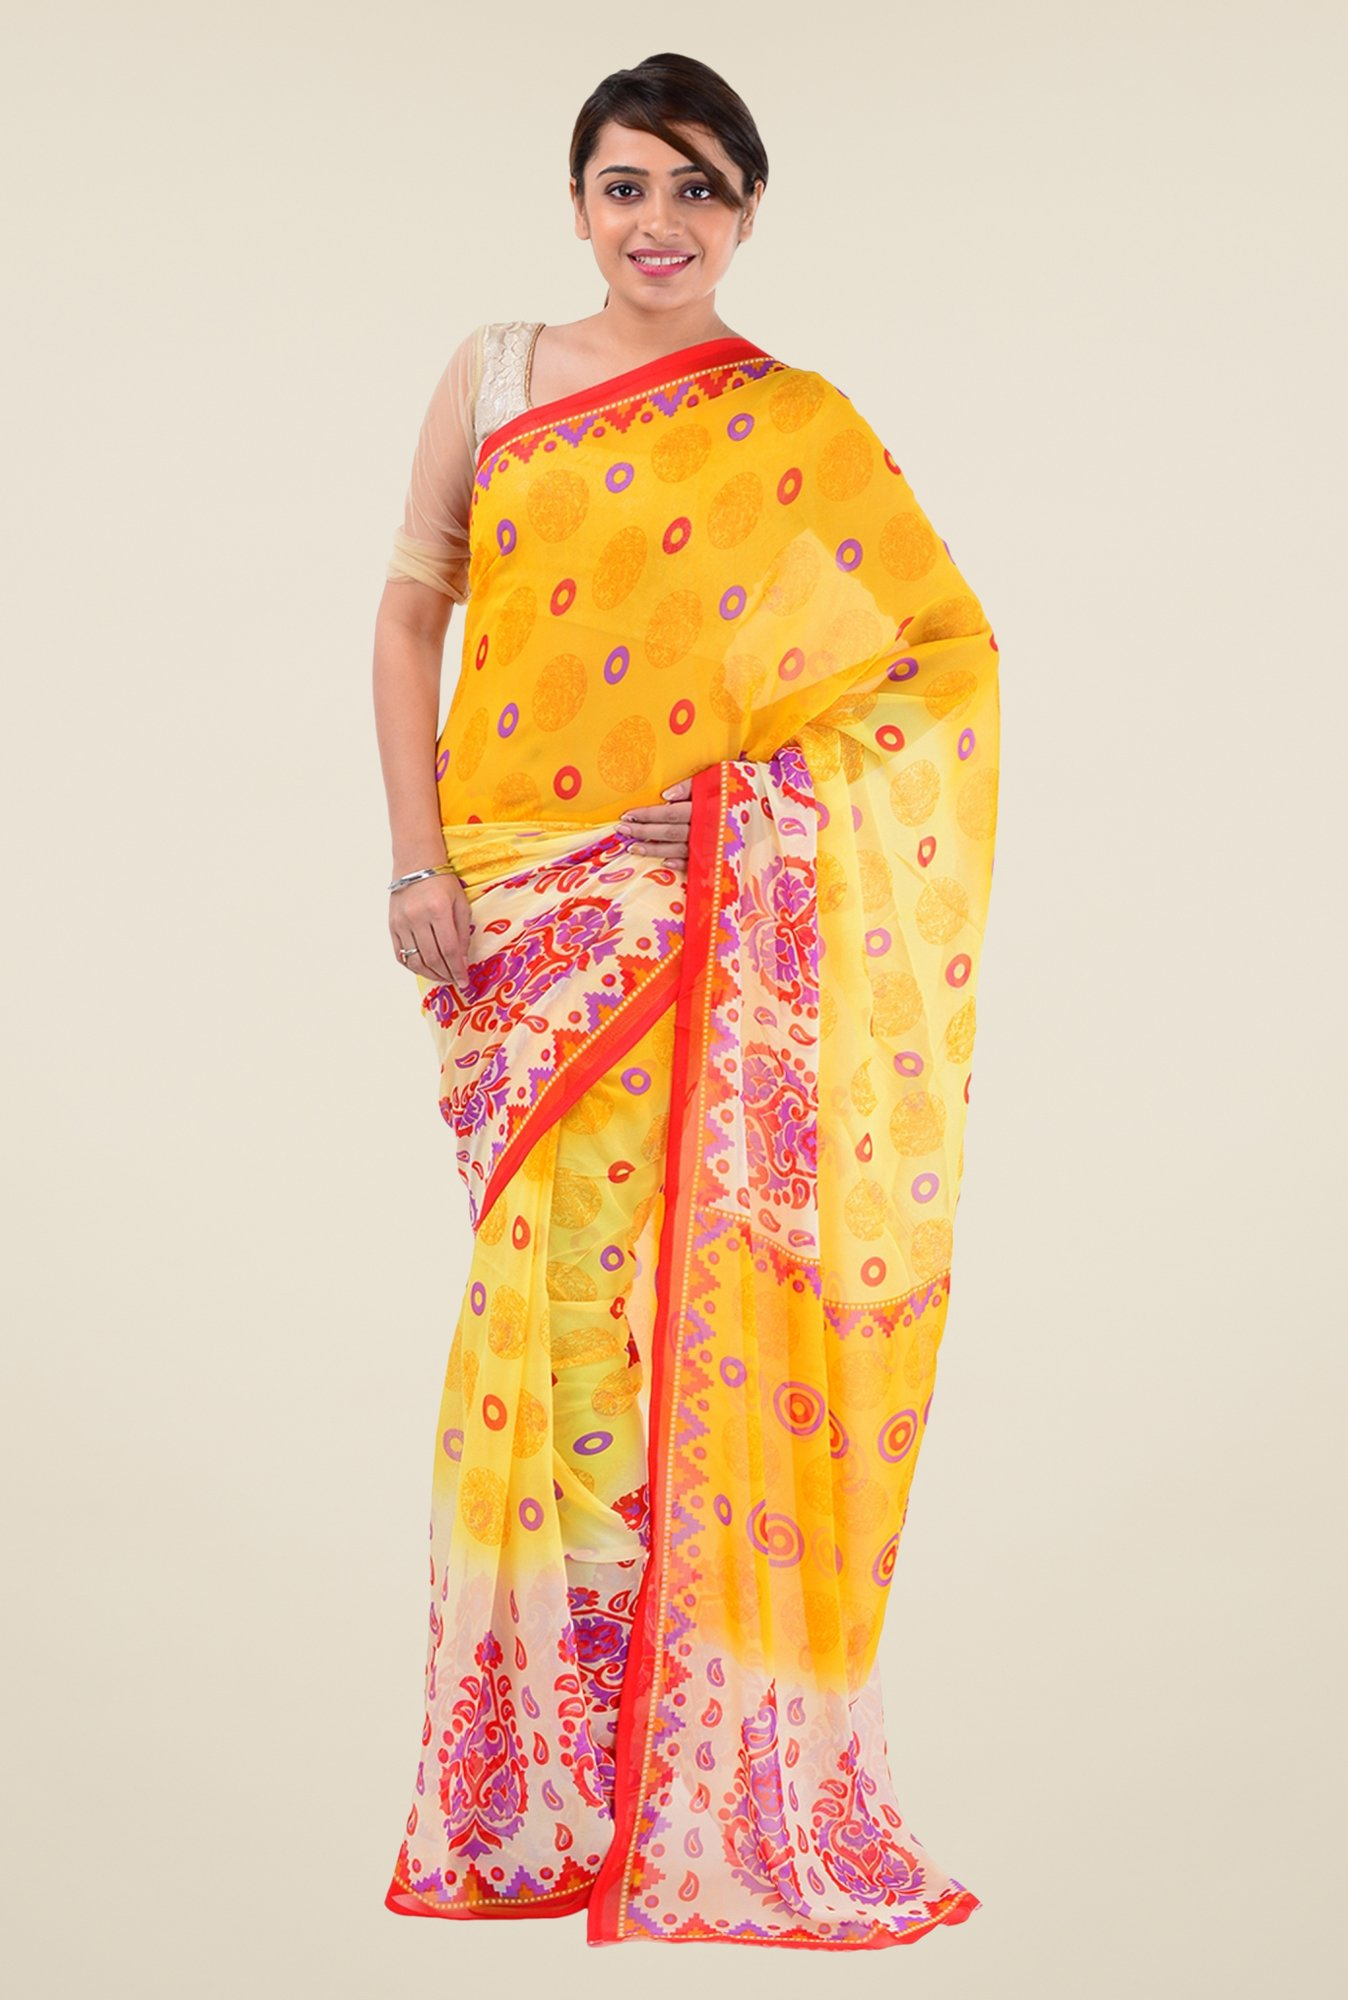 Triveni Yellow Printed Faux Georgette Dry Clean Saree